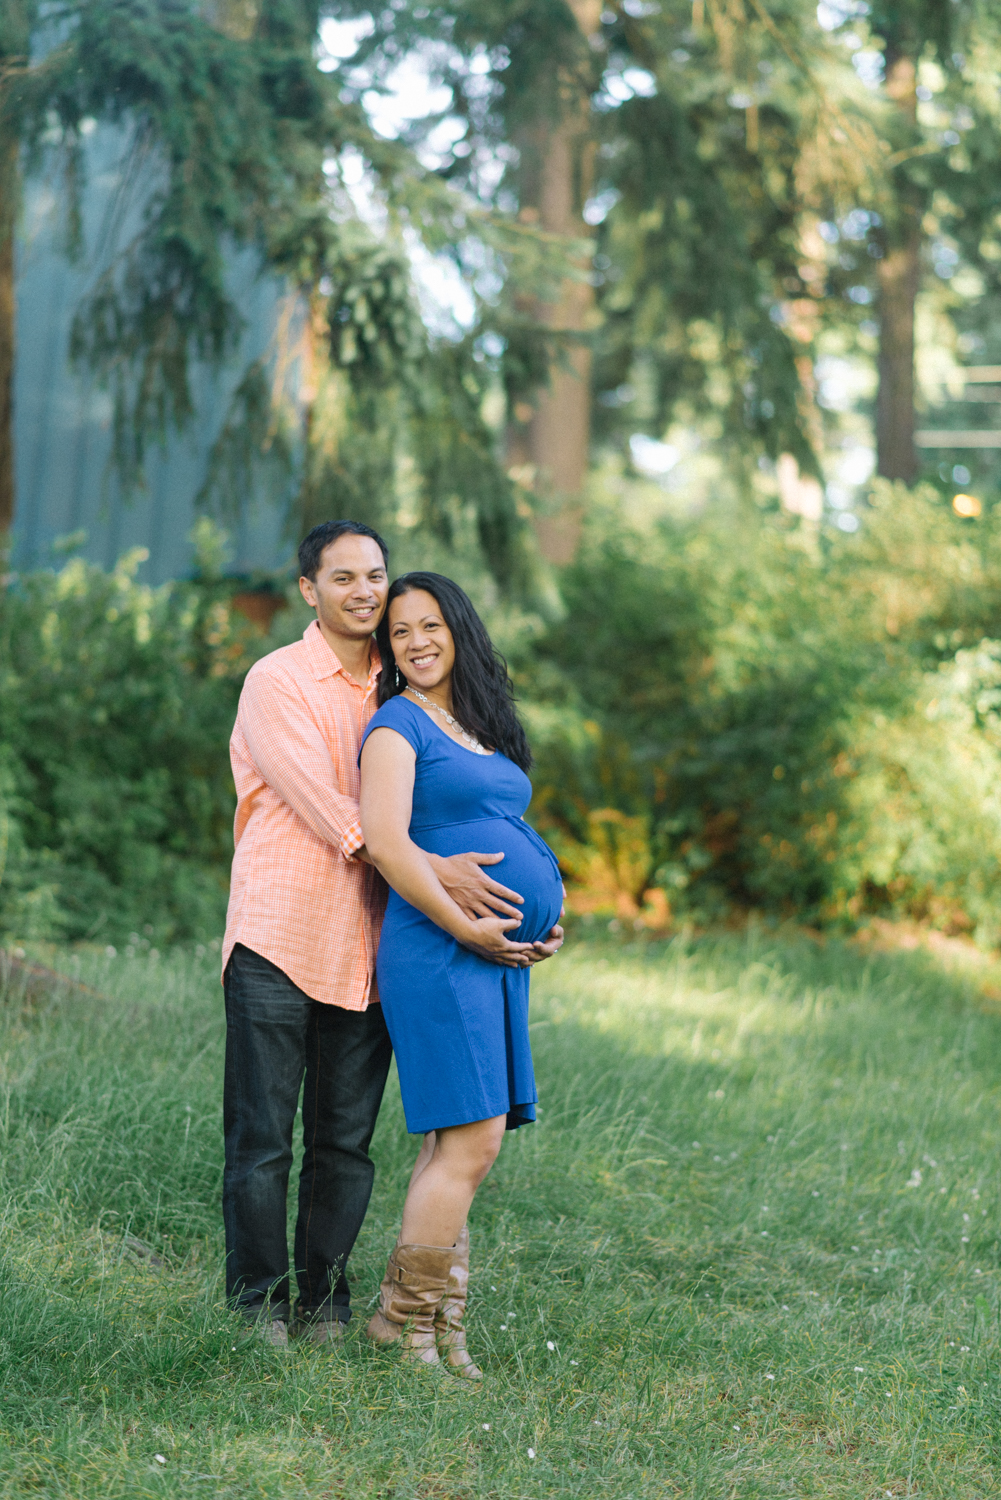 Maternity-Photographer-Portland-Oregon-Couples-Portrait-Hoyt-Arboretum-Washington-Park-Nature-Natural-Light-Shelley-Marie-Photography-6